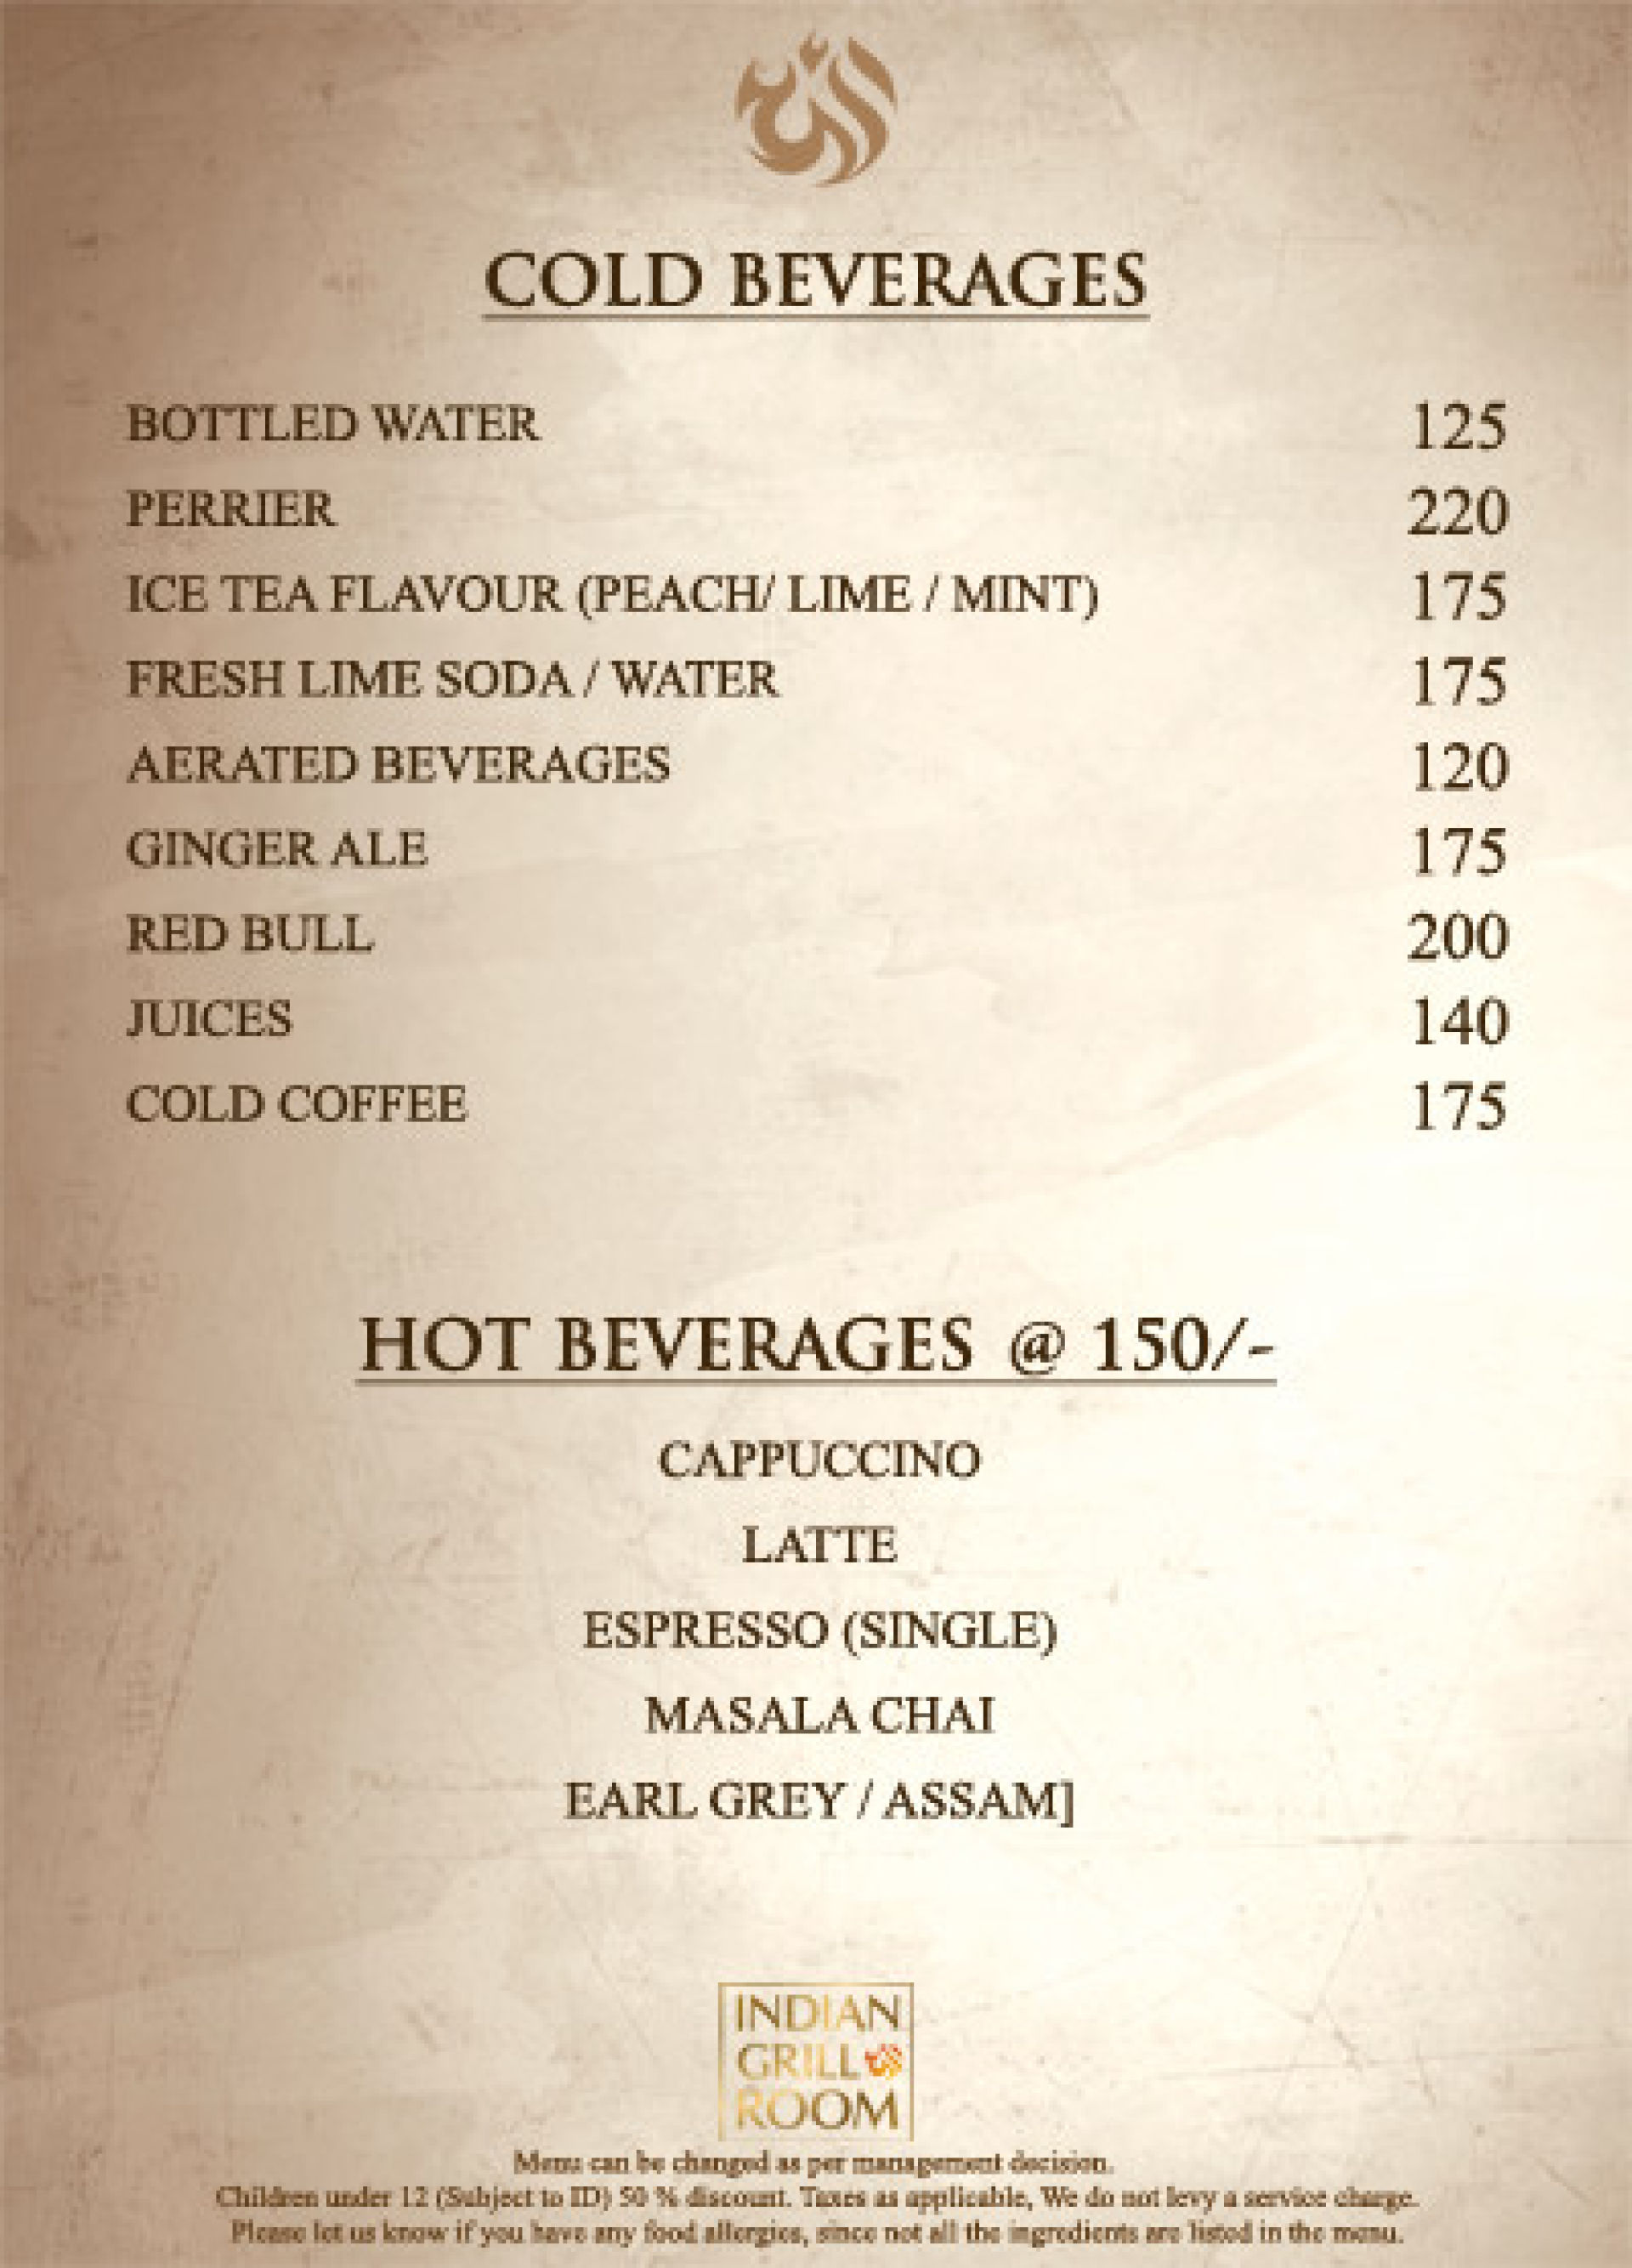 Menu of the Indian Grill Room